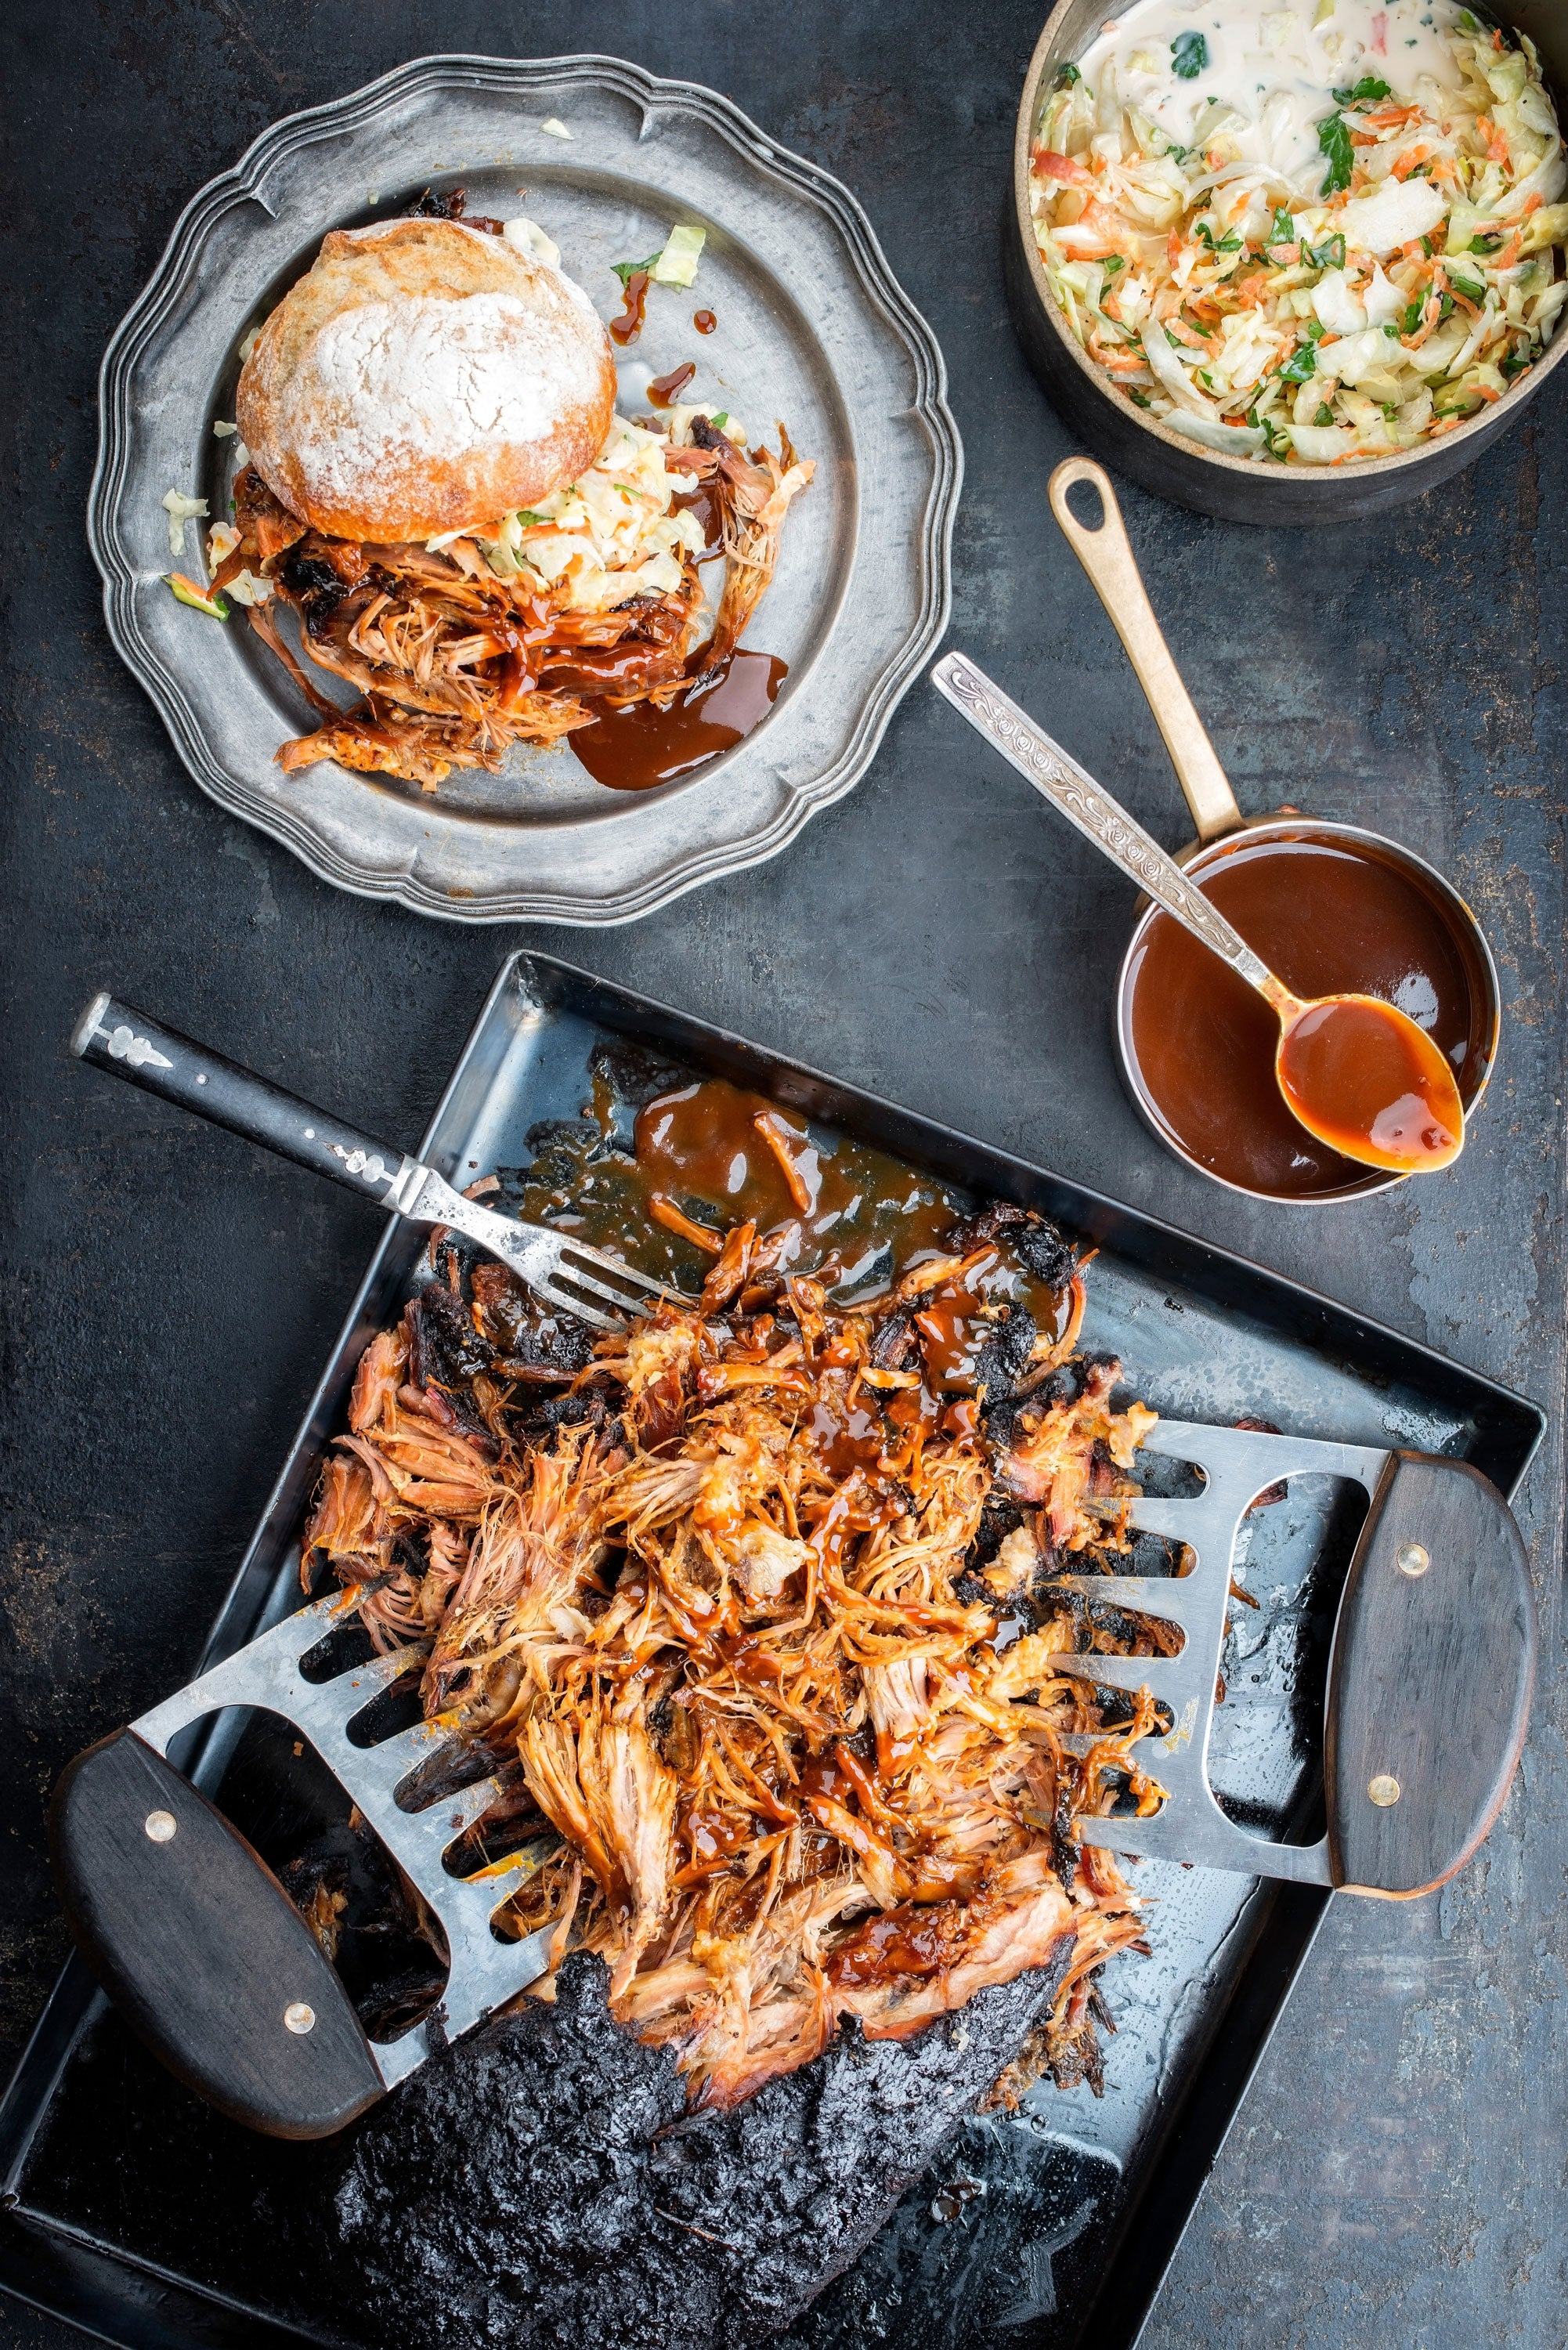 Joe's Pulled Pork BBQ Package - joes.shop